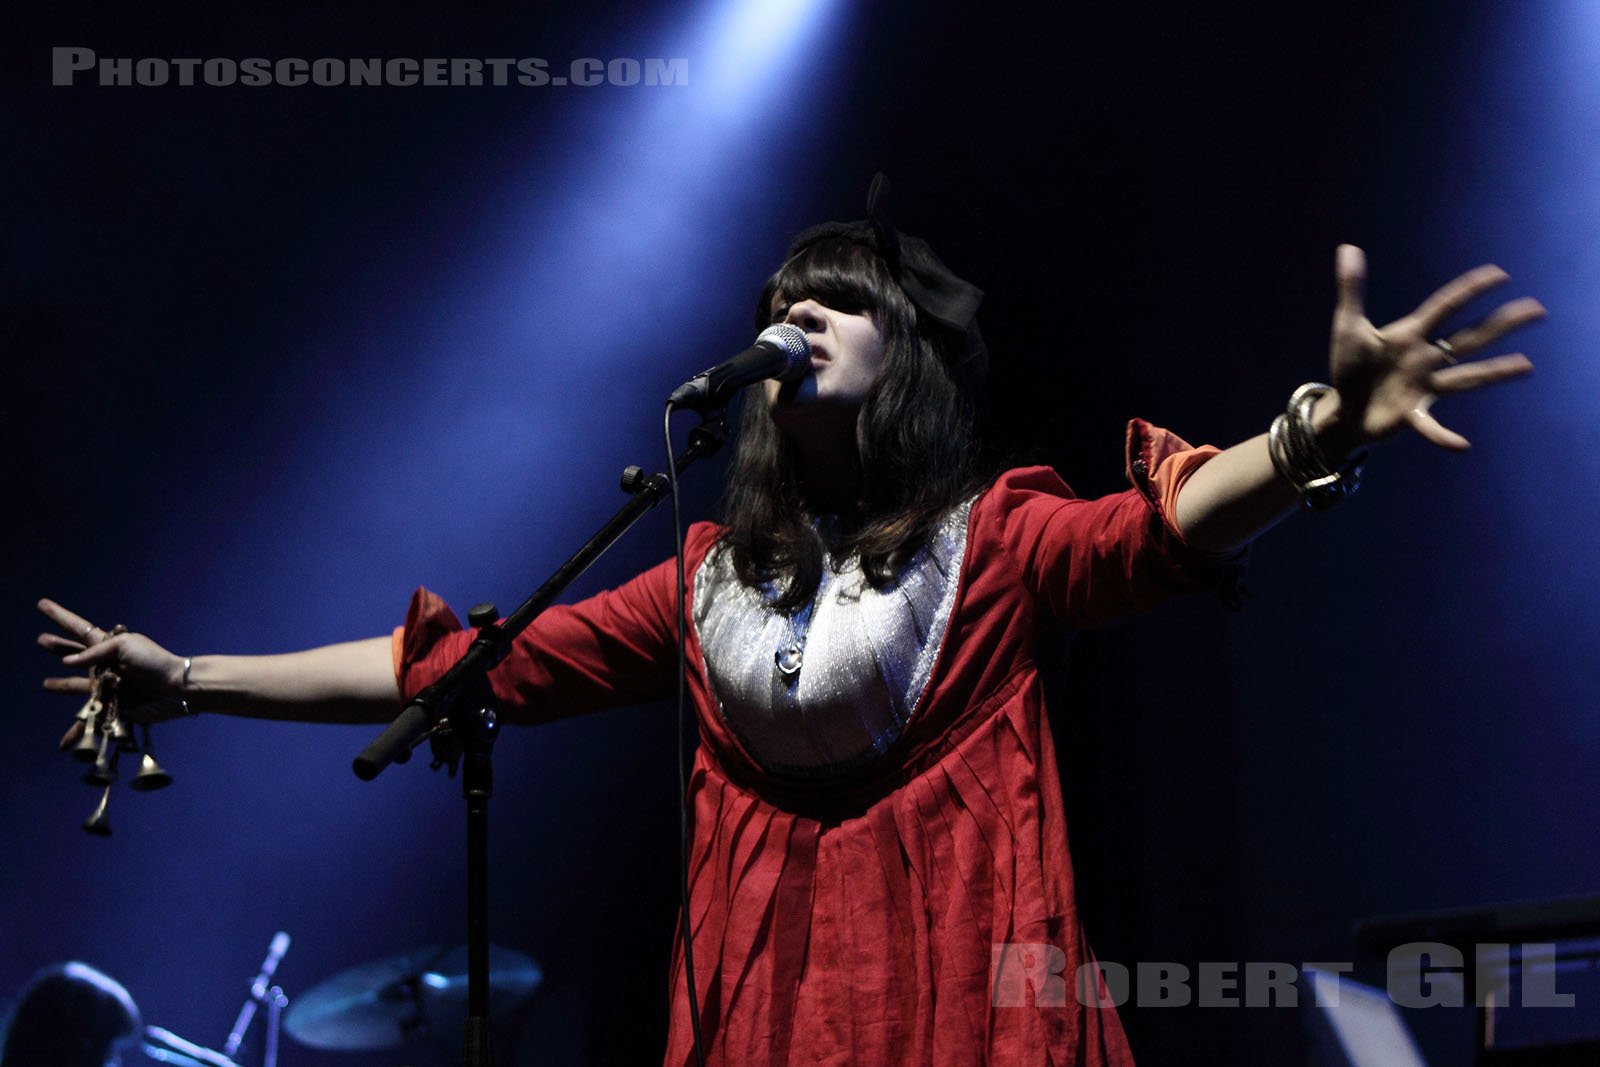 BAT FOR LASHES - 2009-11-04 - PARIS - Olympia